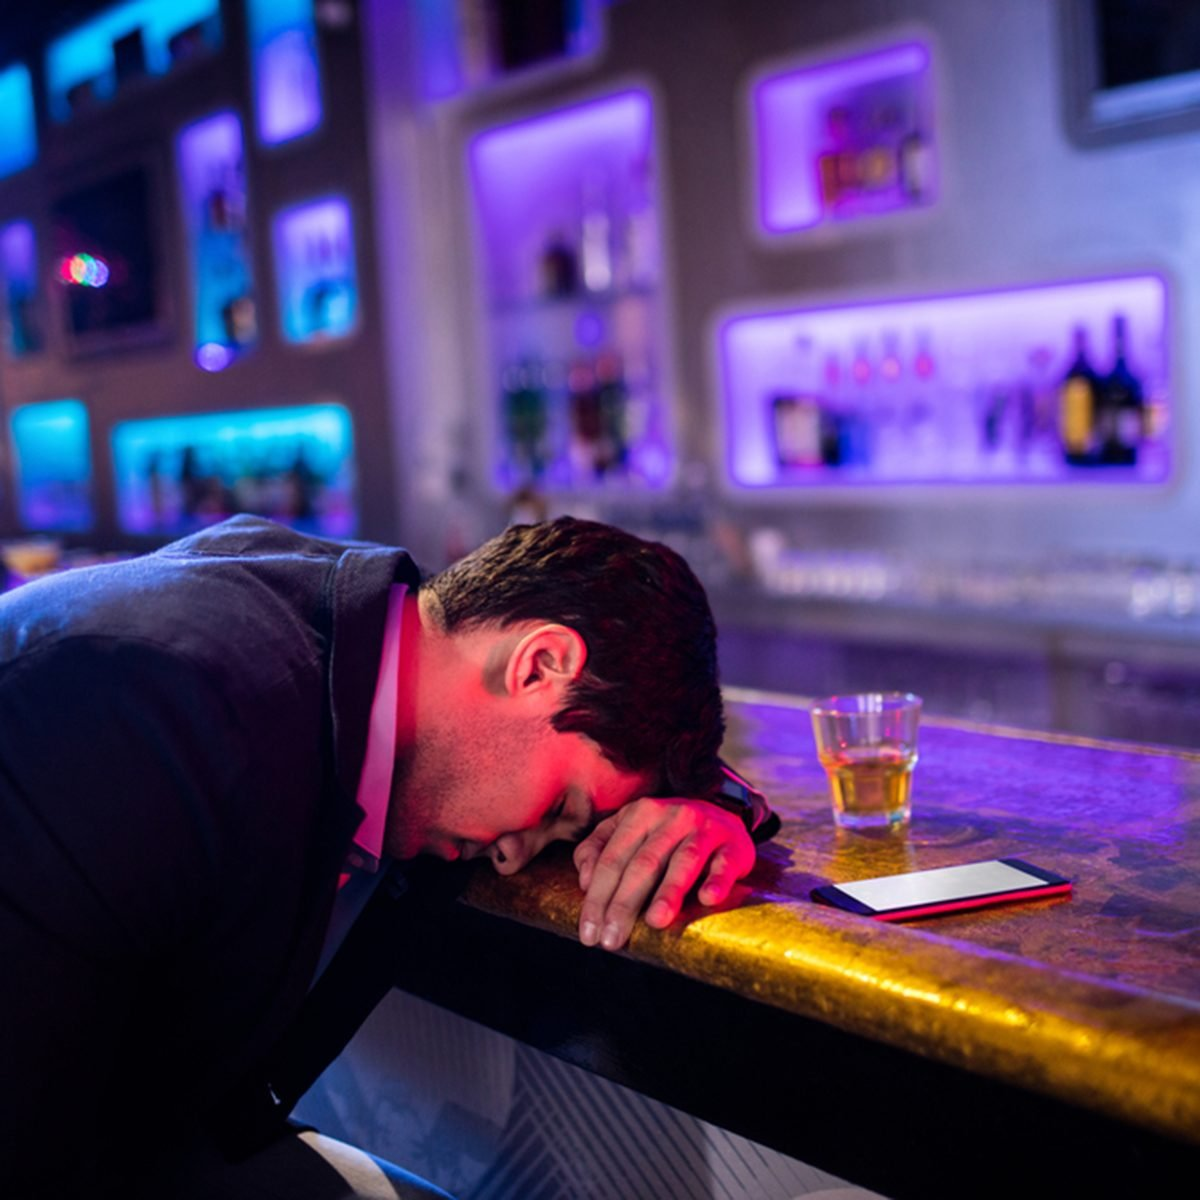 Depressed drunk man sleeping with his head on the table in bar; Shutterstock ID 547877209; Job (TFH, TOH, RD, BNB, CWM, CM): TOH